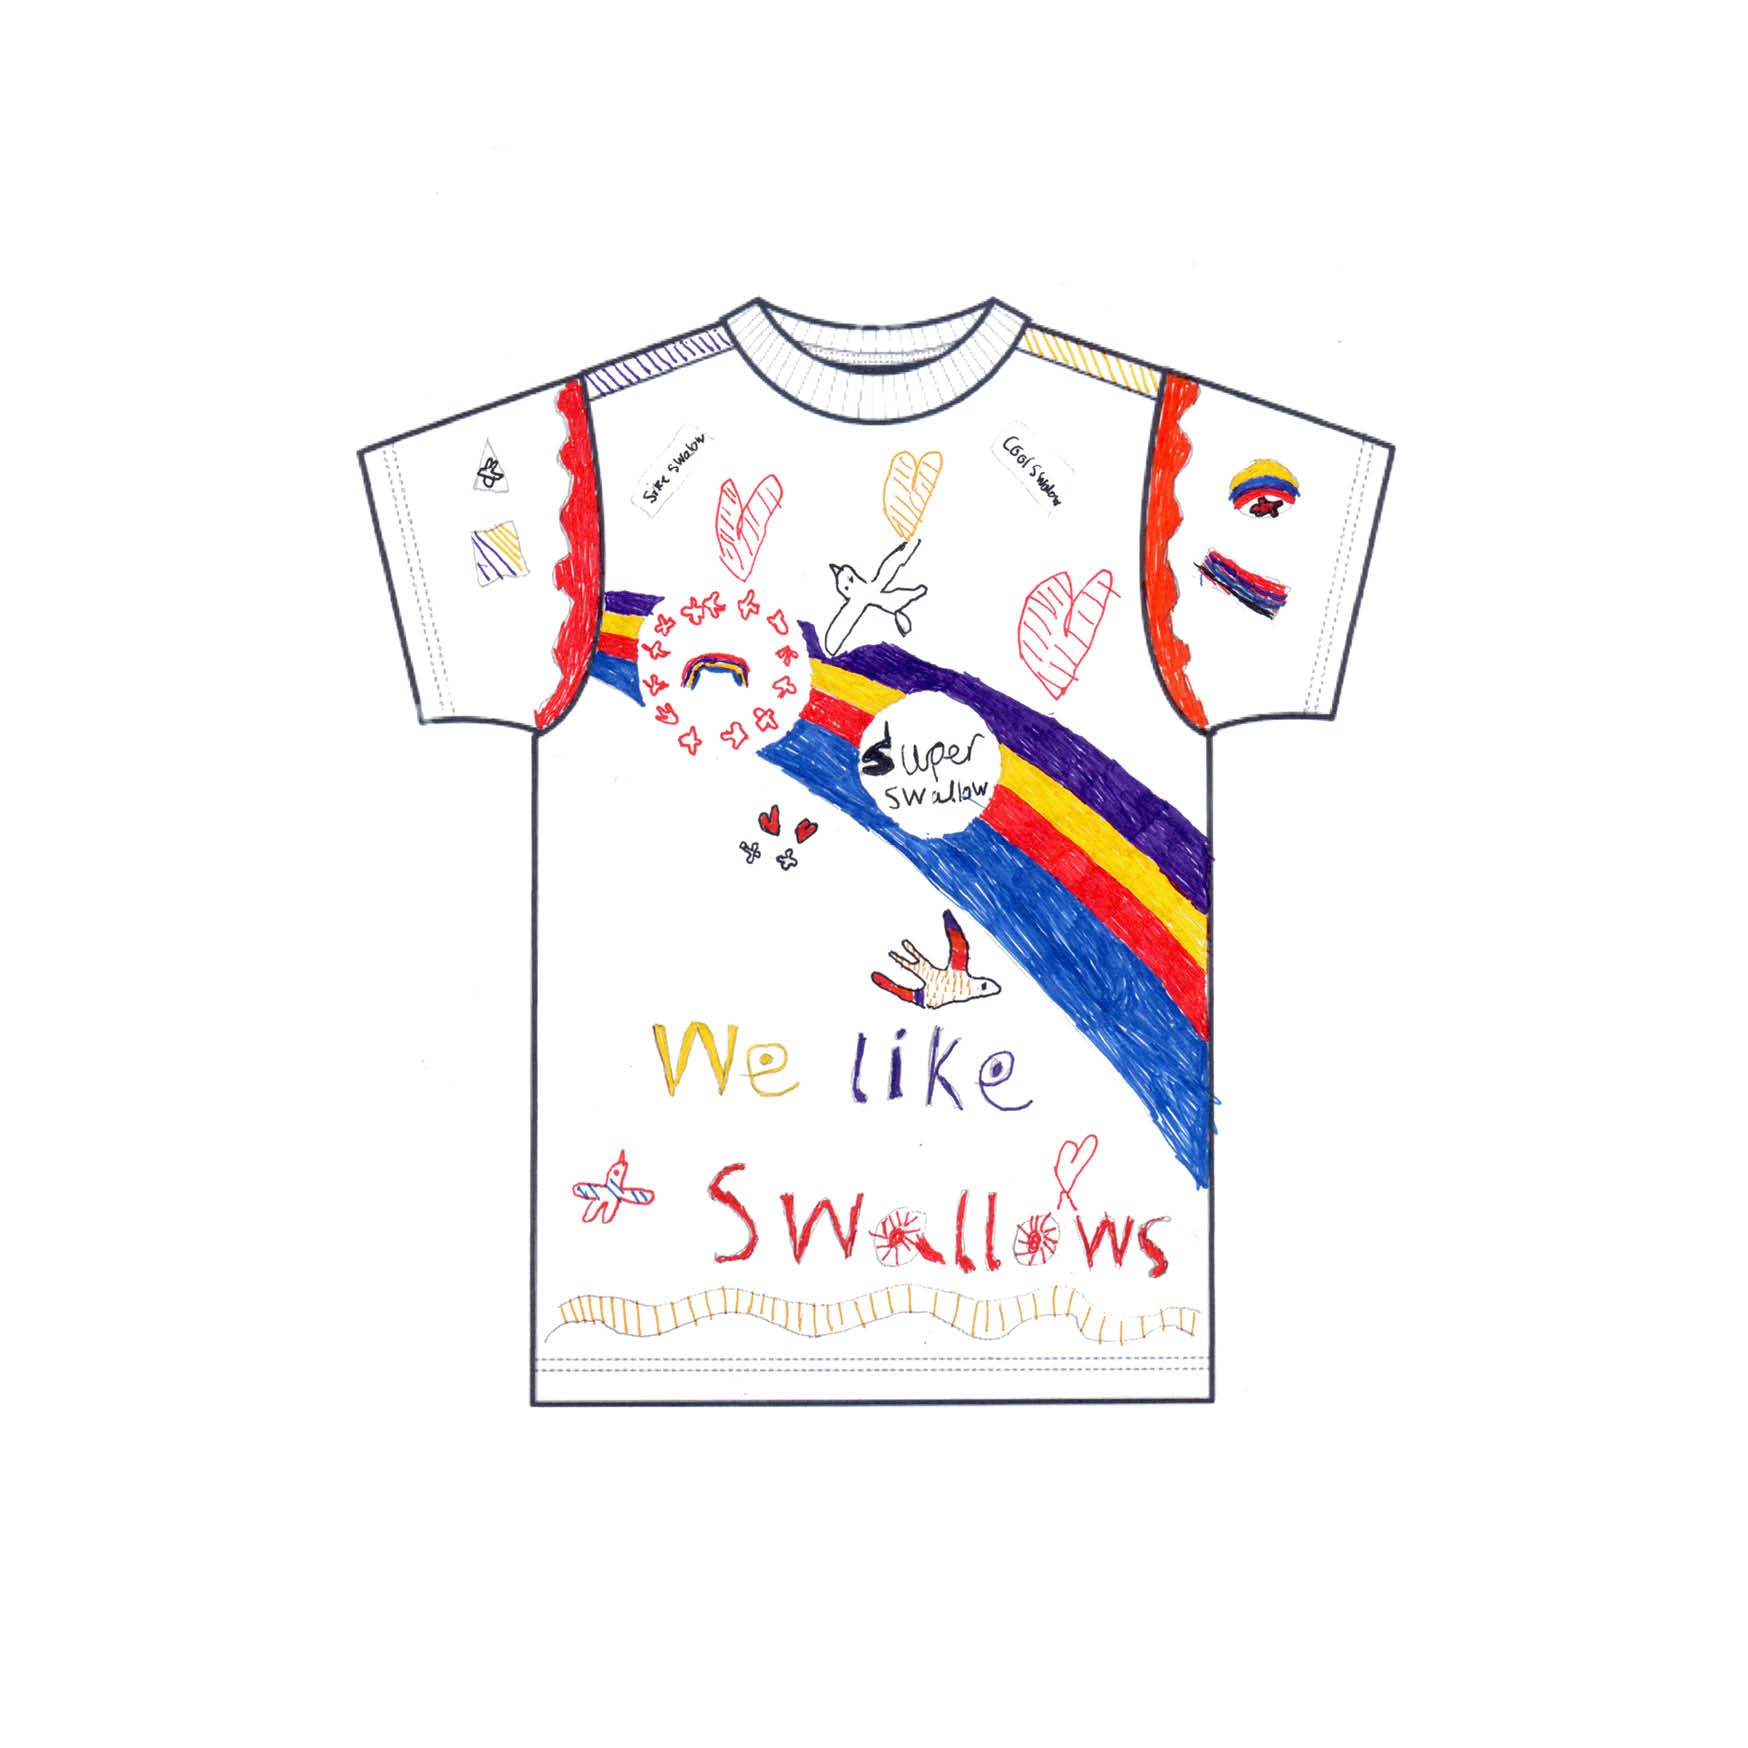 'K-dog' - Winner of FinisterreForNHS t-shirt design competition [Kids category]